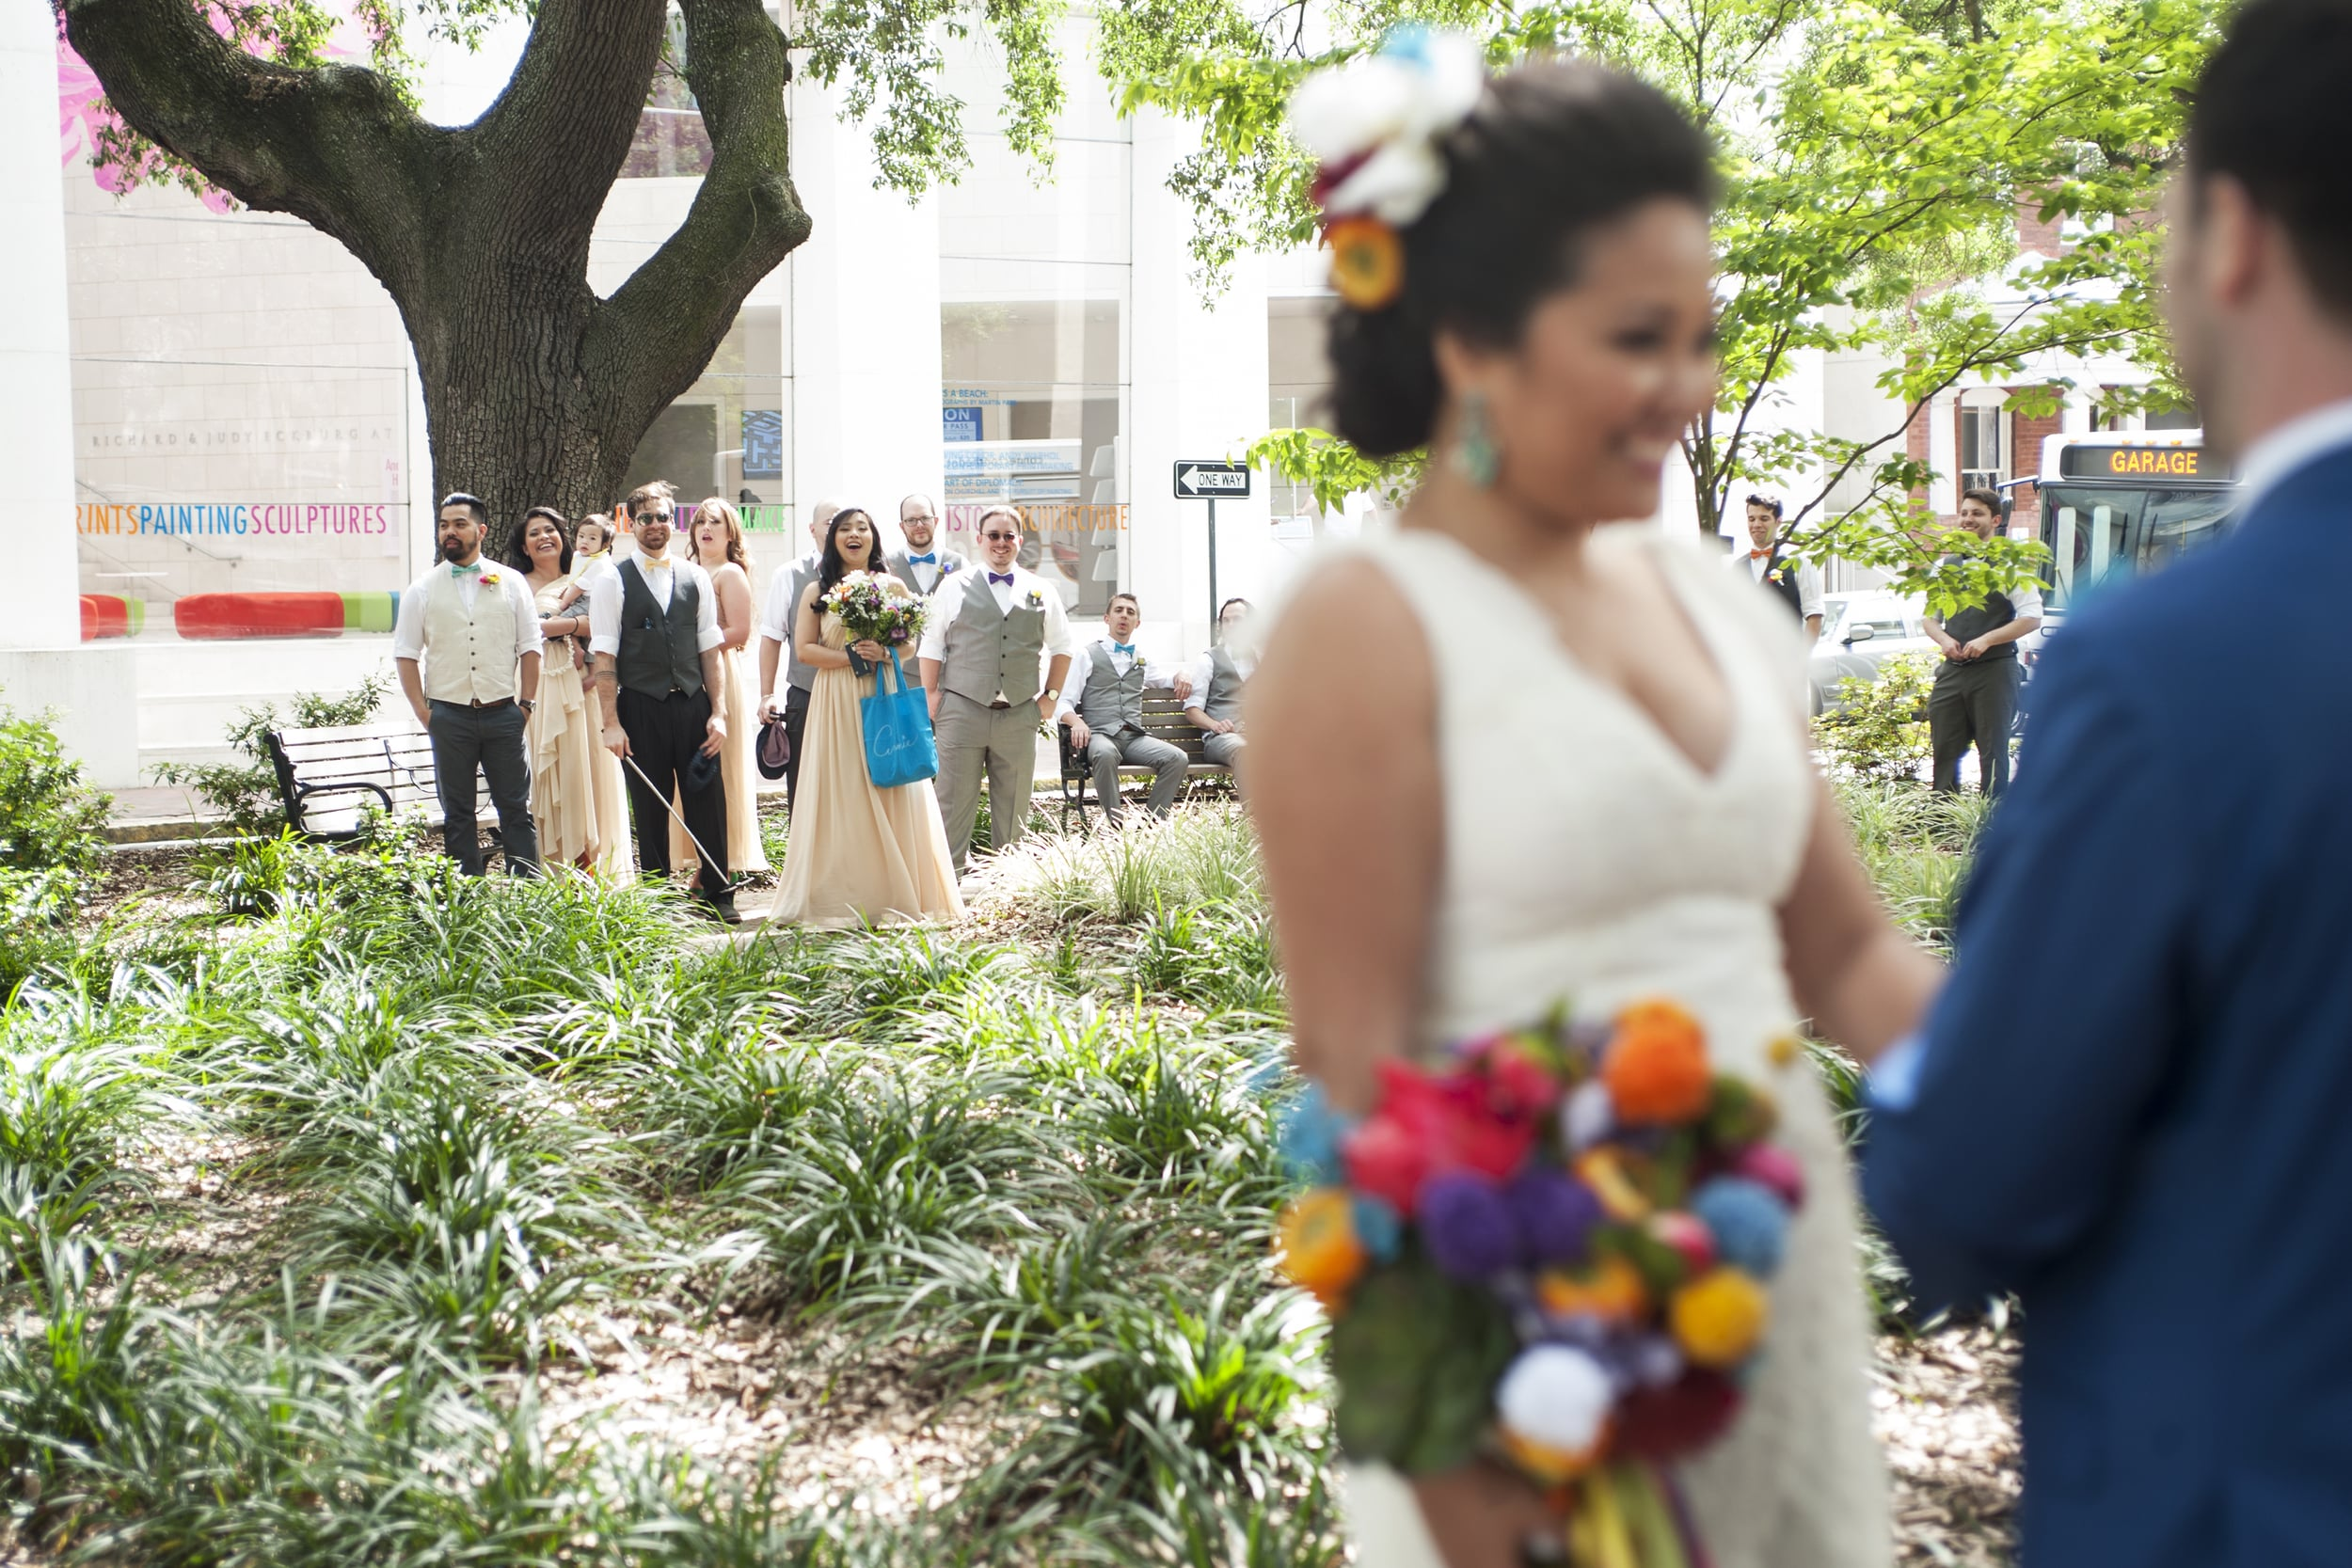 jeff-and-mollie-take-pictures-ivory-and-beau-wedding-planning-ivory-and-beau-bridal-boutique-old-fort-jackson-wedding-colorful-wedding-savannah-wedding-planner-savannah-weddings-michelle-and-johnny-wedding-savannah-weddings-indie-wedding-11.jpg